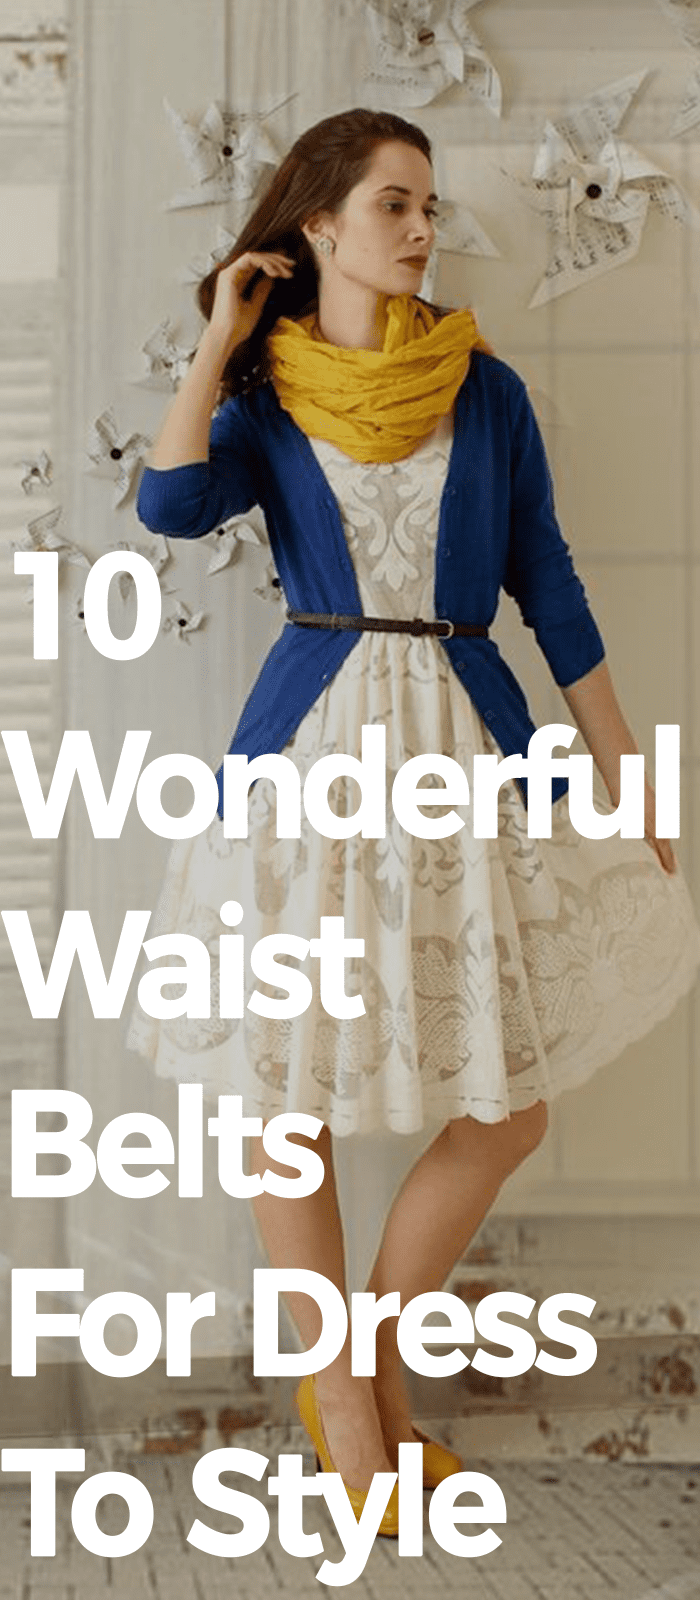 10 Wonderful Waist Belts For Dress To Style!